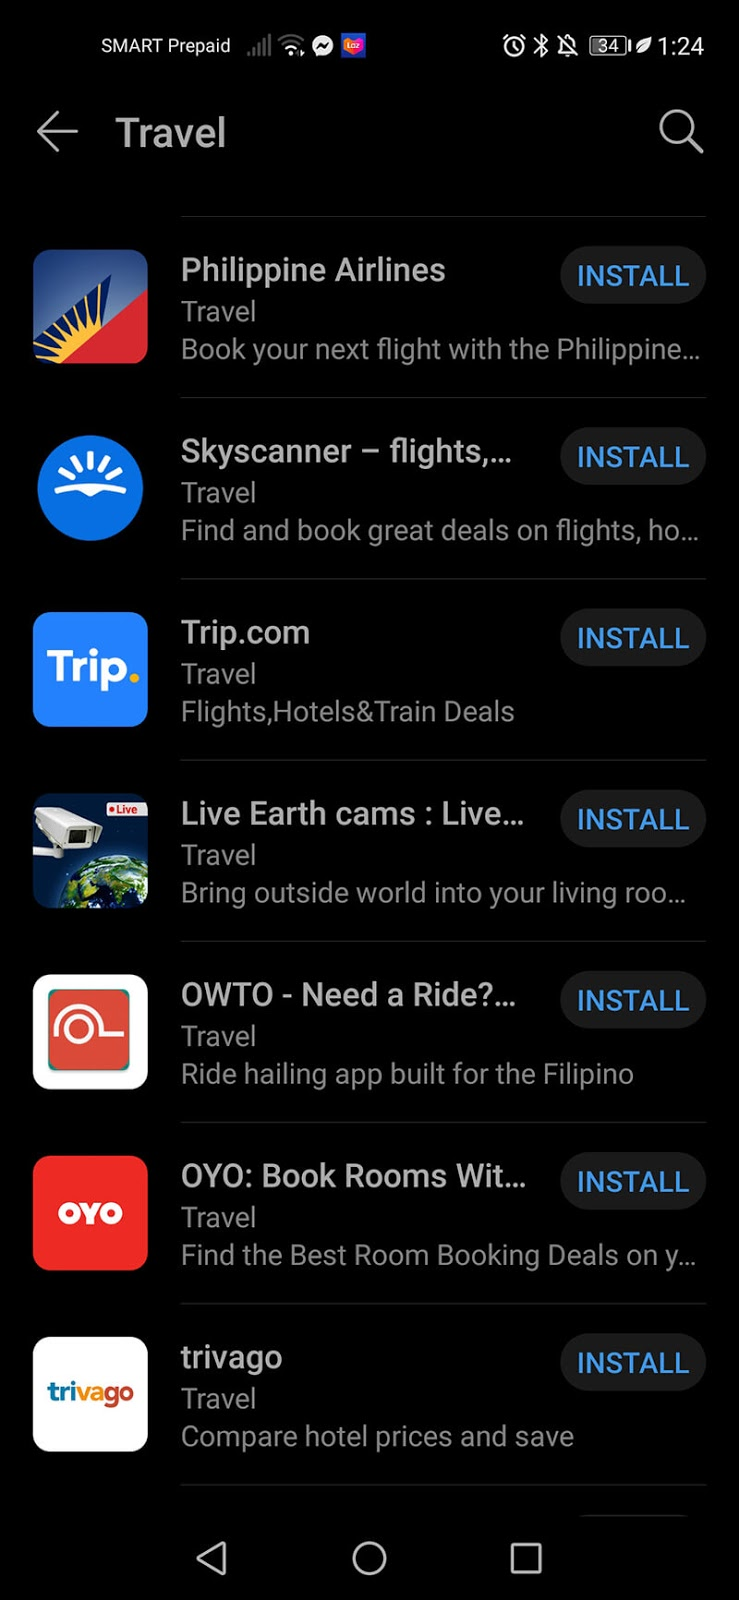 Travel-related apps inside AppGallery